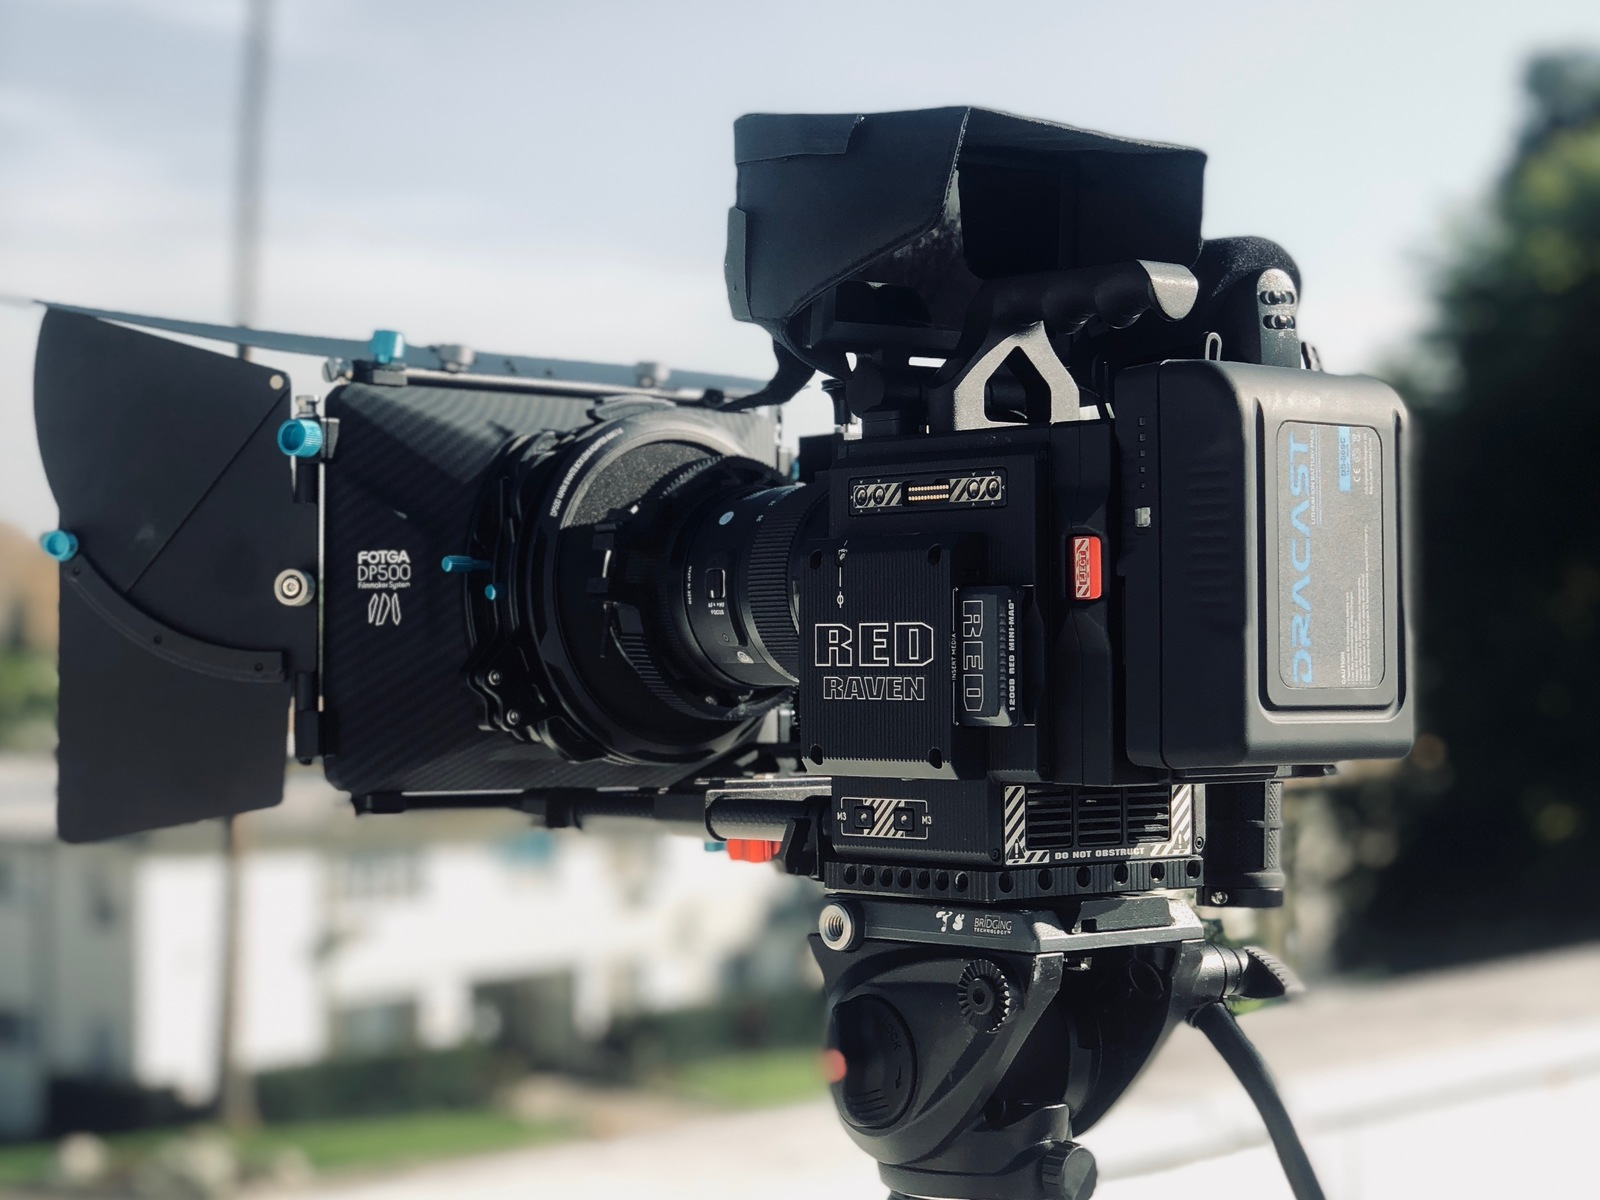 Red Raven Specs Rent A Red Raven Package 3 With Lens Mattebox Follow Focus More Best Prices Sharegrid Los Angeles